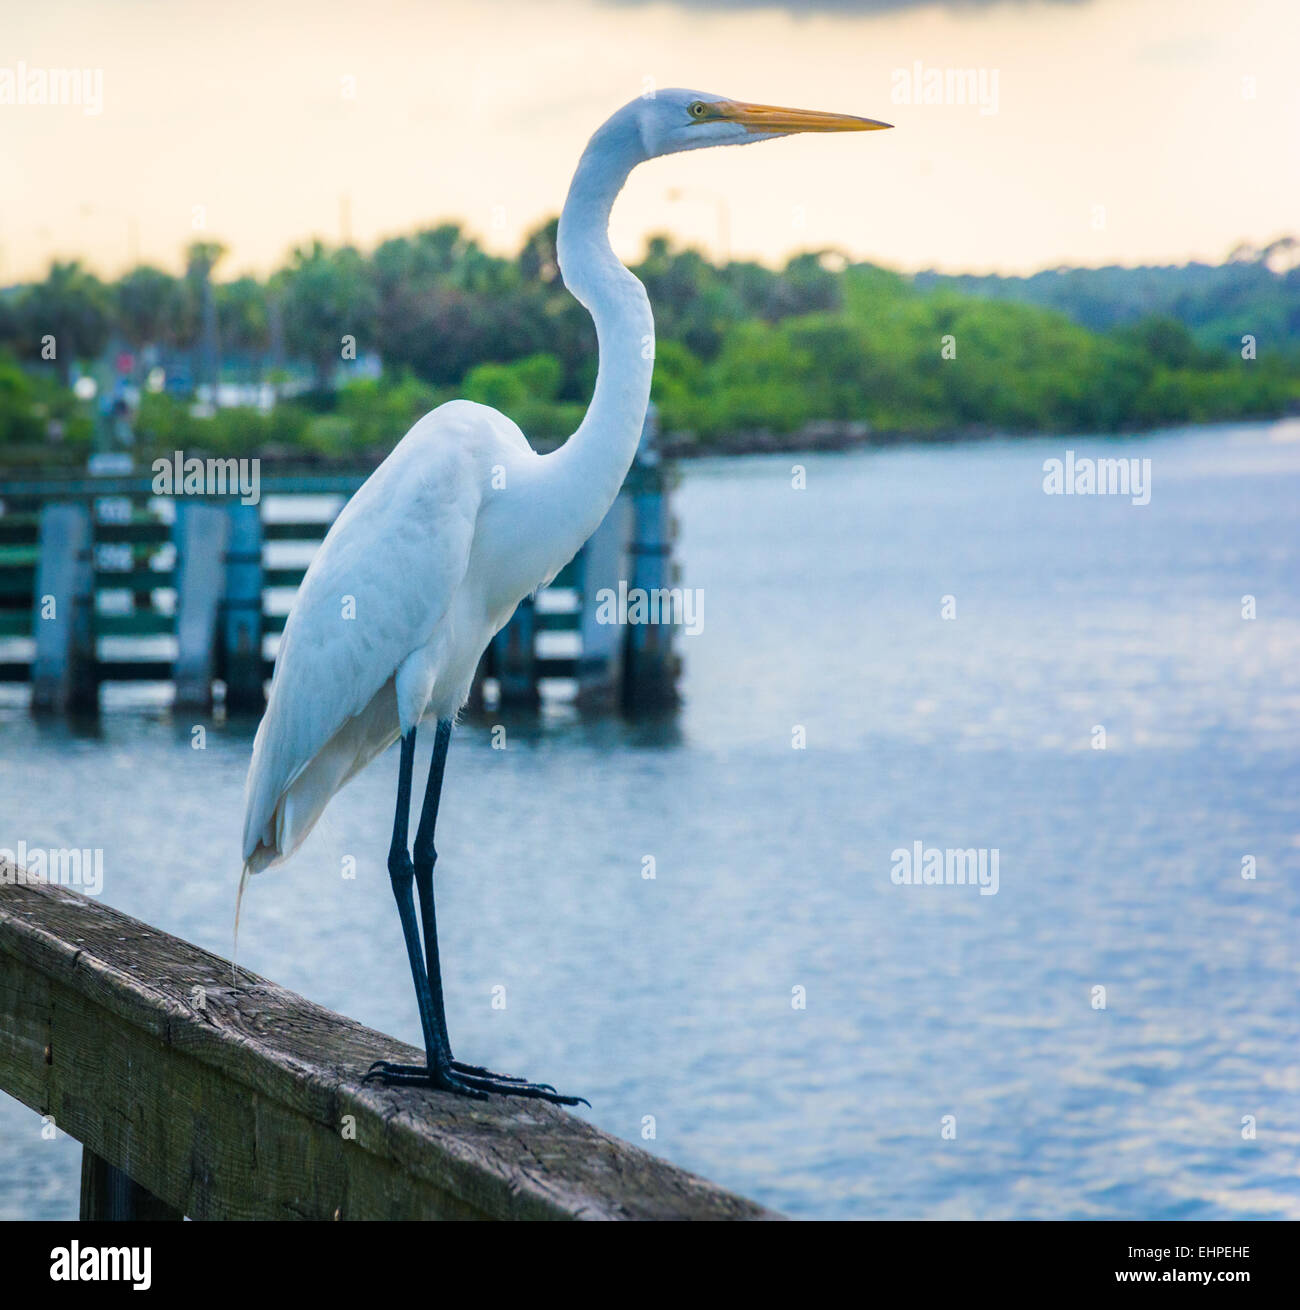 Egret on a fishing pier in Miami, Florida. - Stock Image